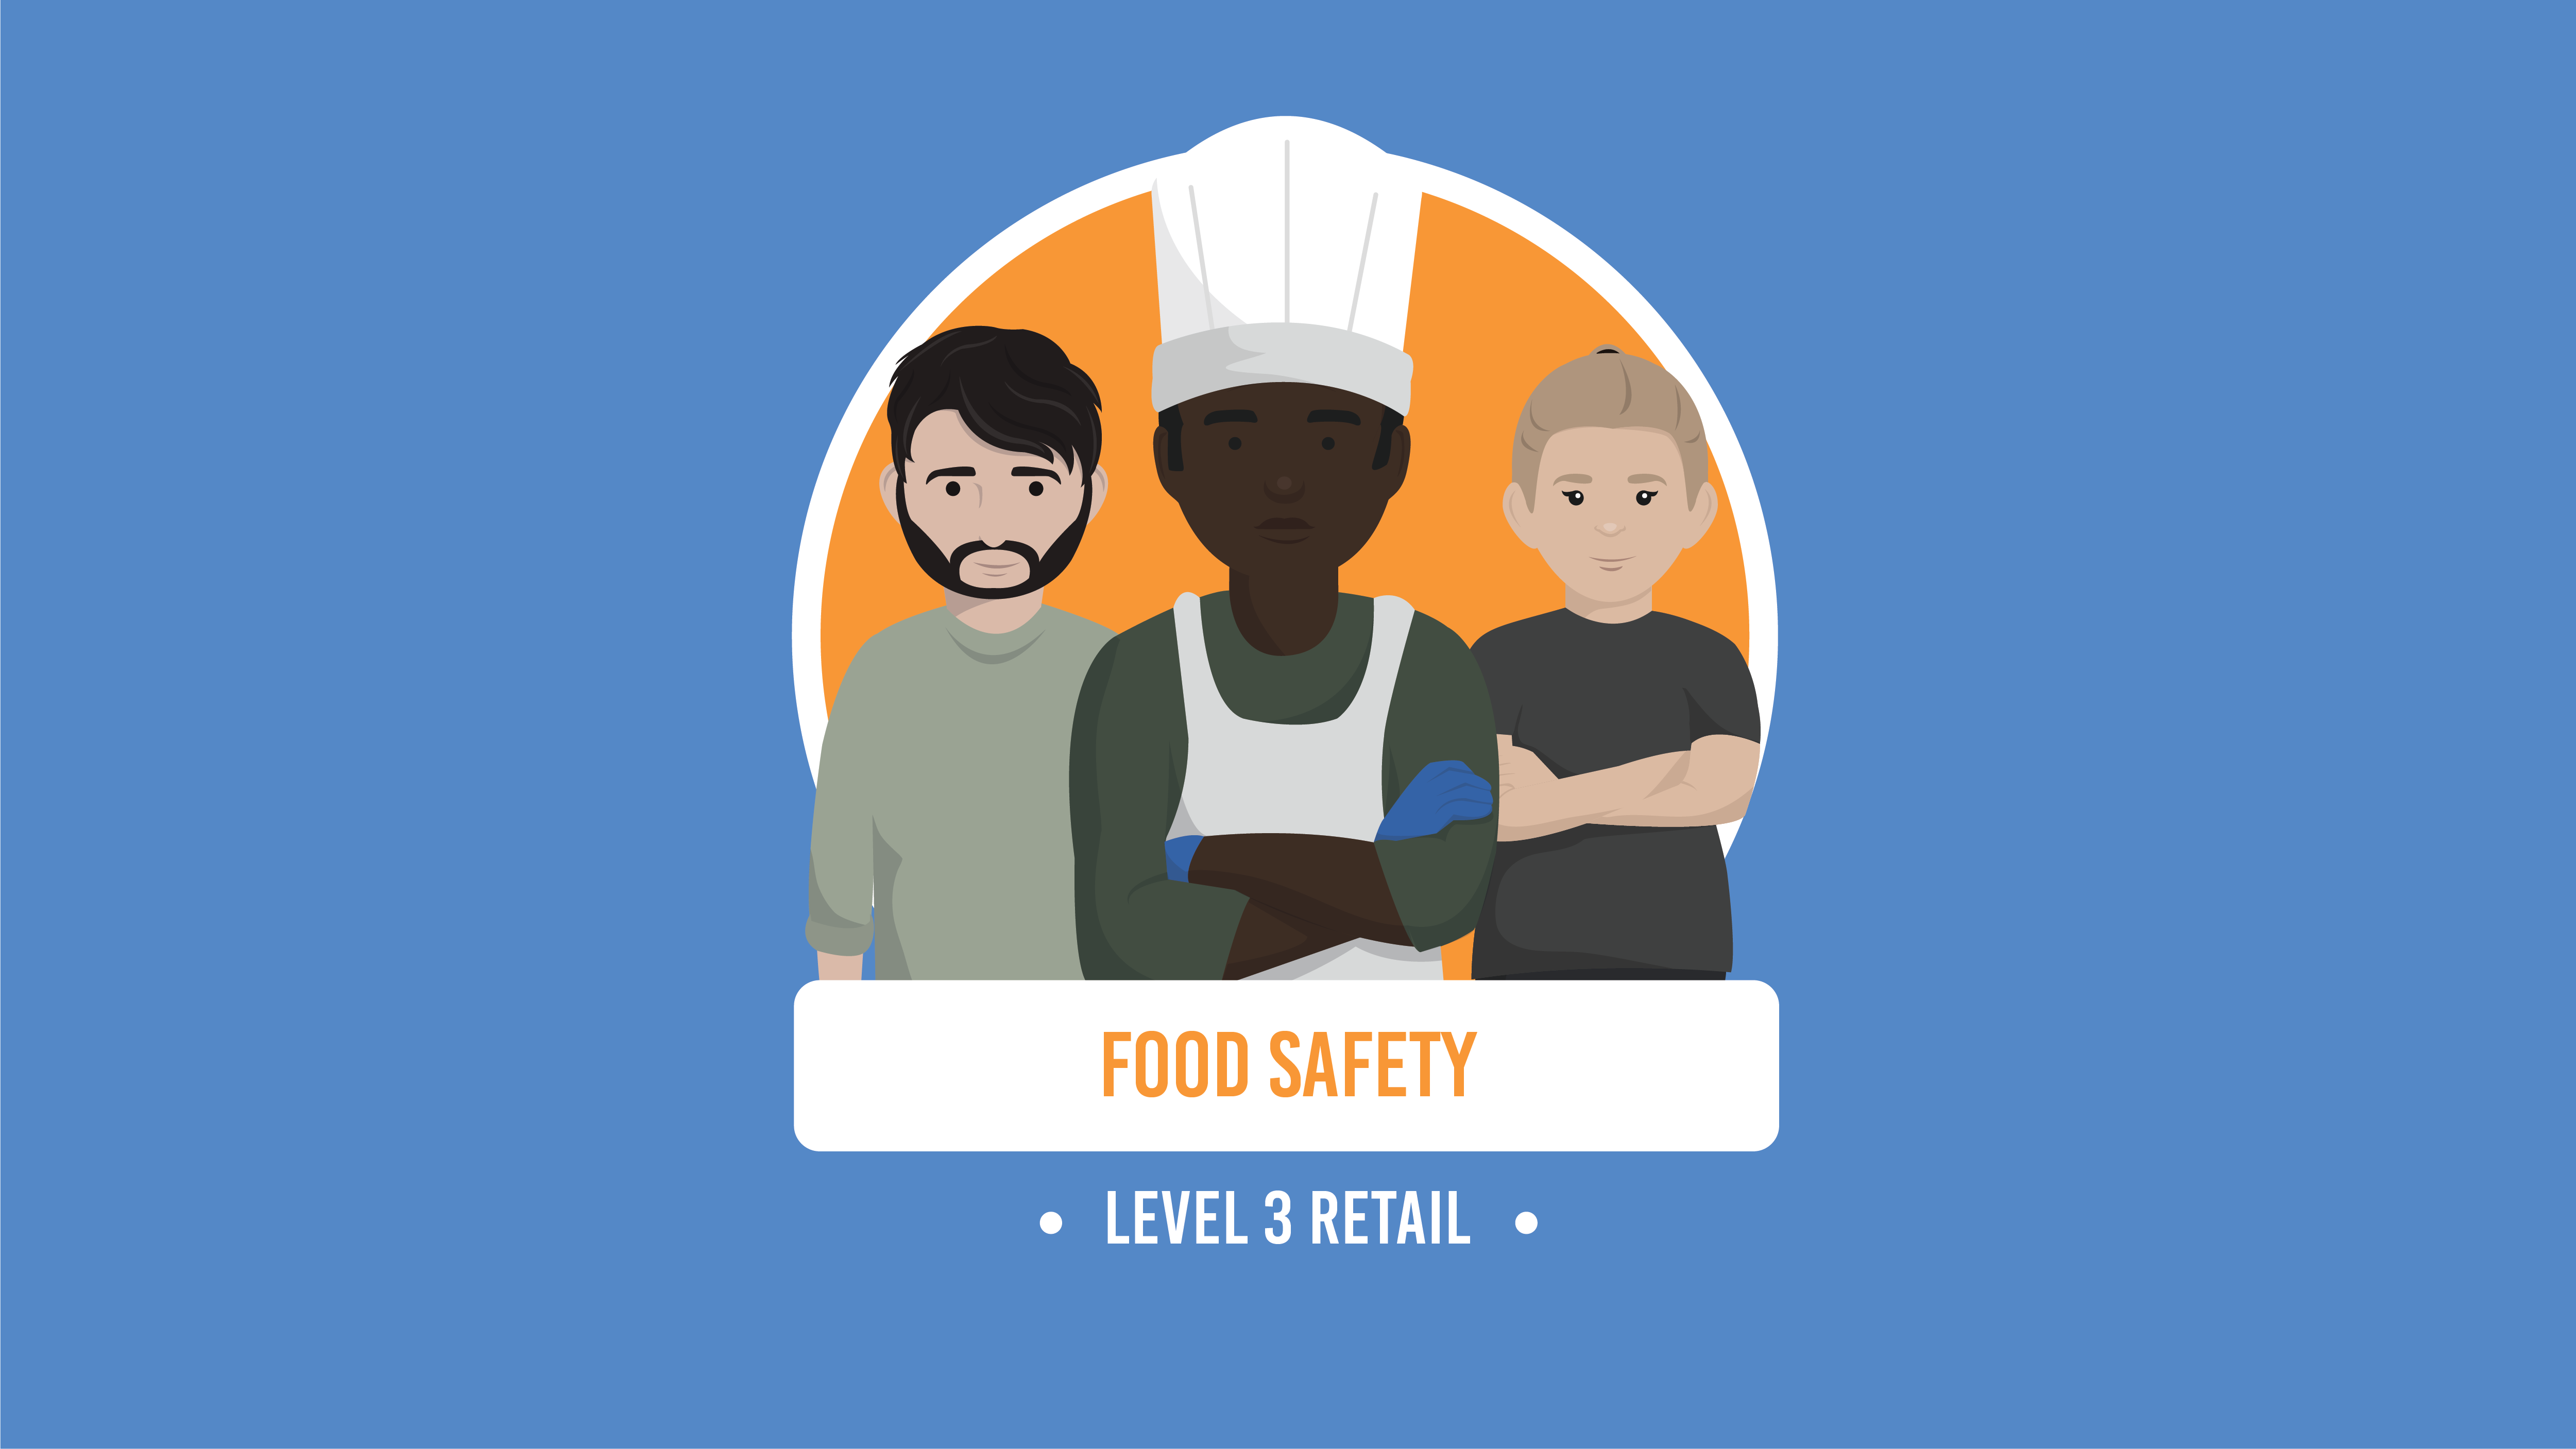 Food Hygiene Level 3 for Retail